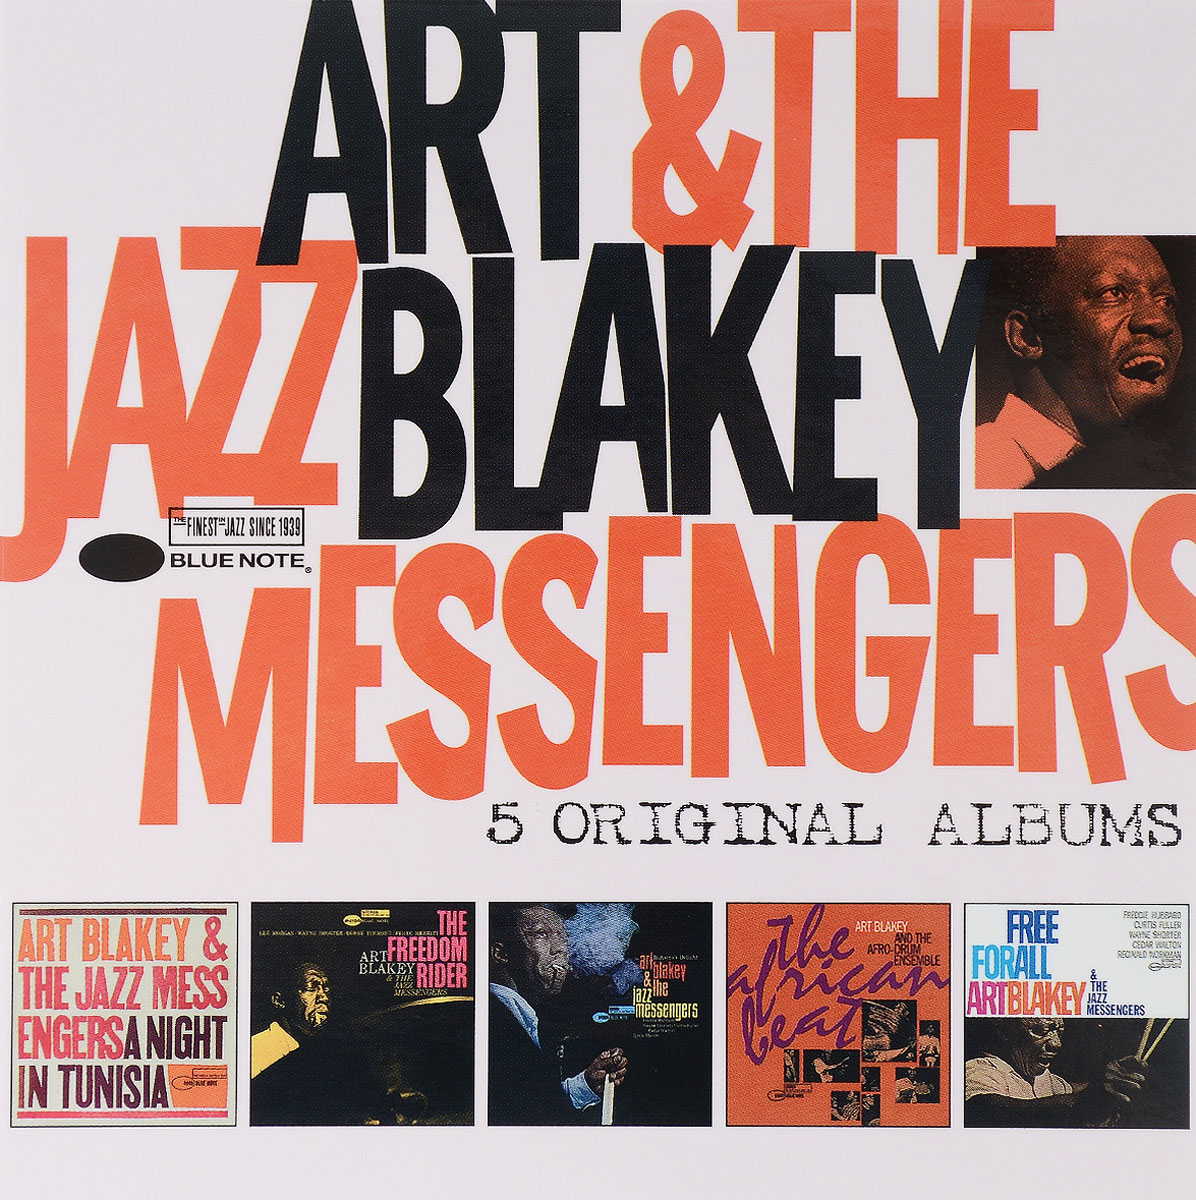 Арт Блэйки,The Jazz Messengers,The Afro-Drum Ensemble,The Jazz Messengers Art Blakey & The Jazz Messengers. 5 Original Albums (5 CD) t art блузка